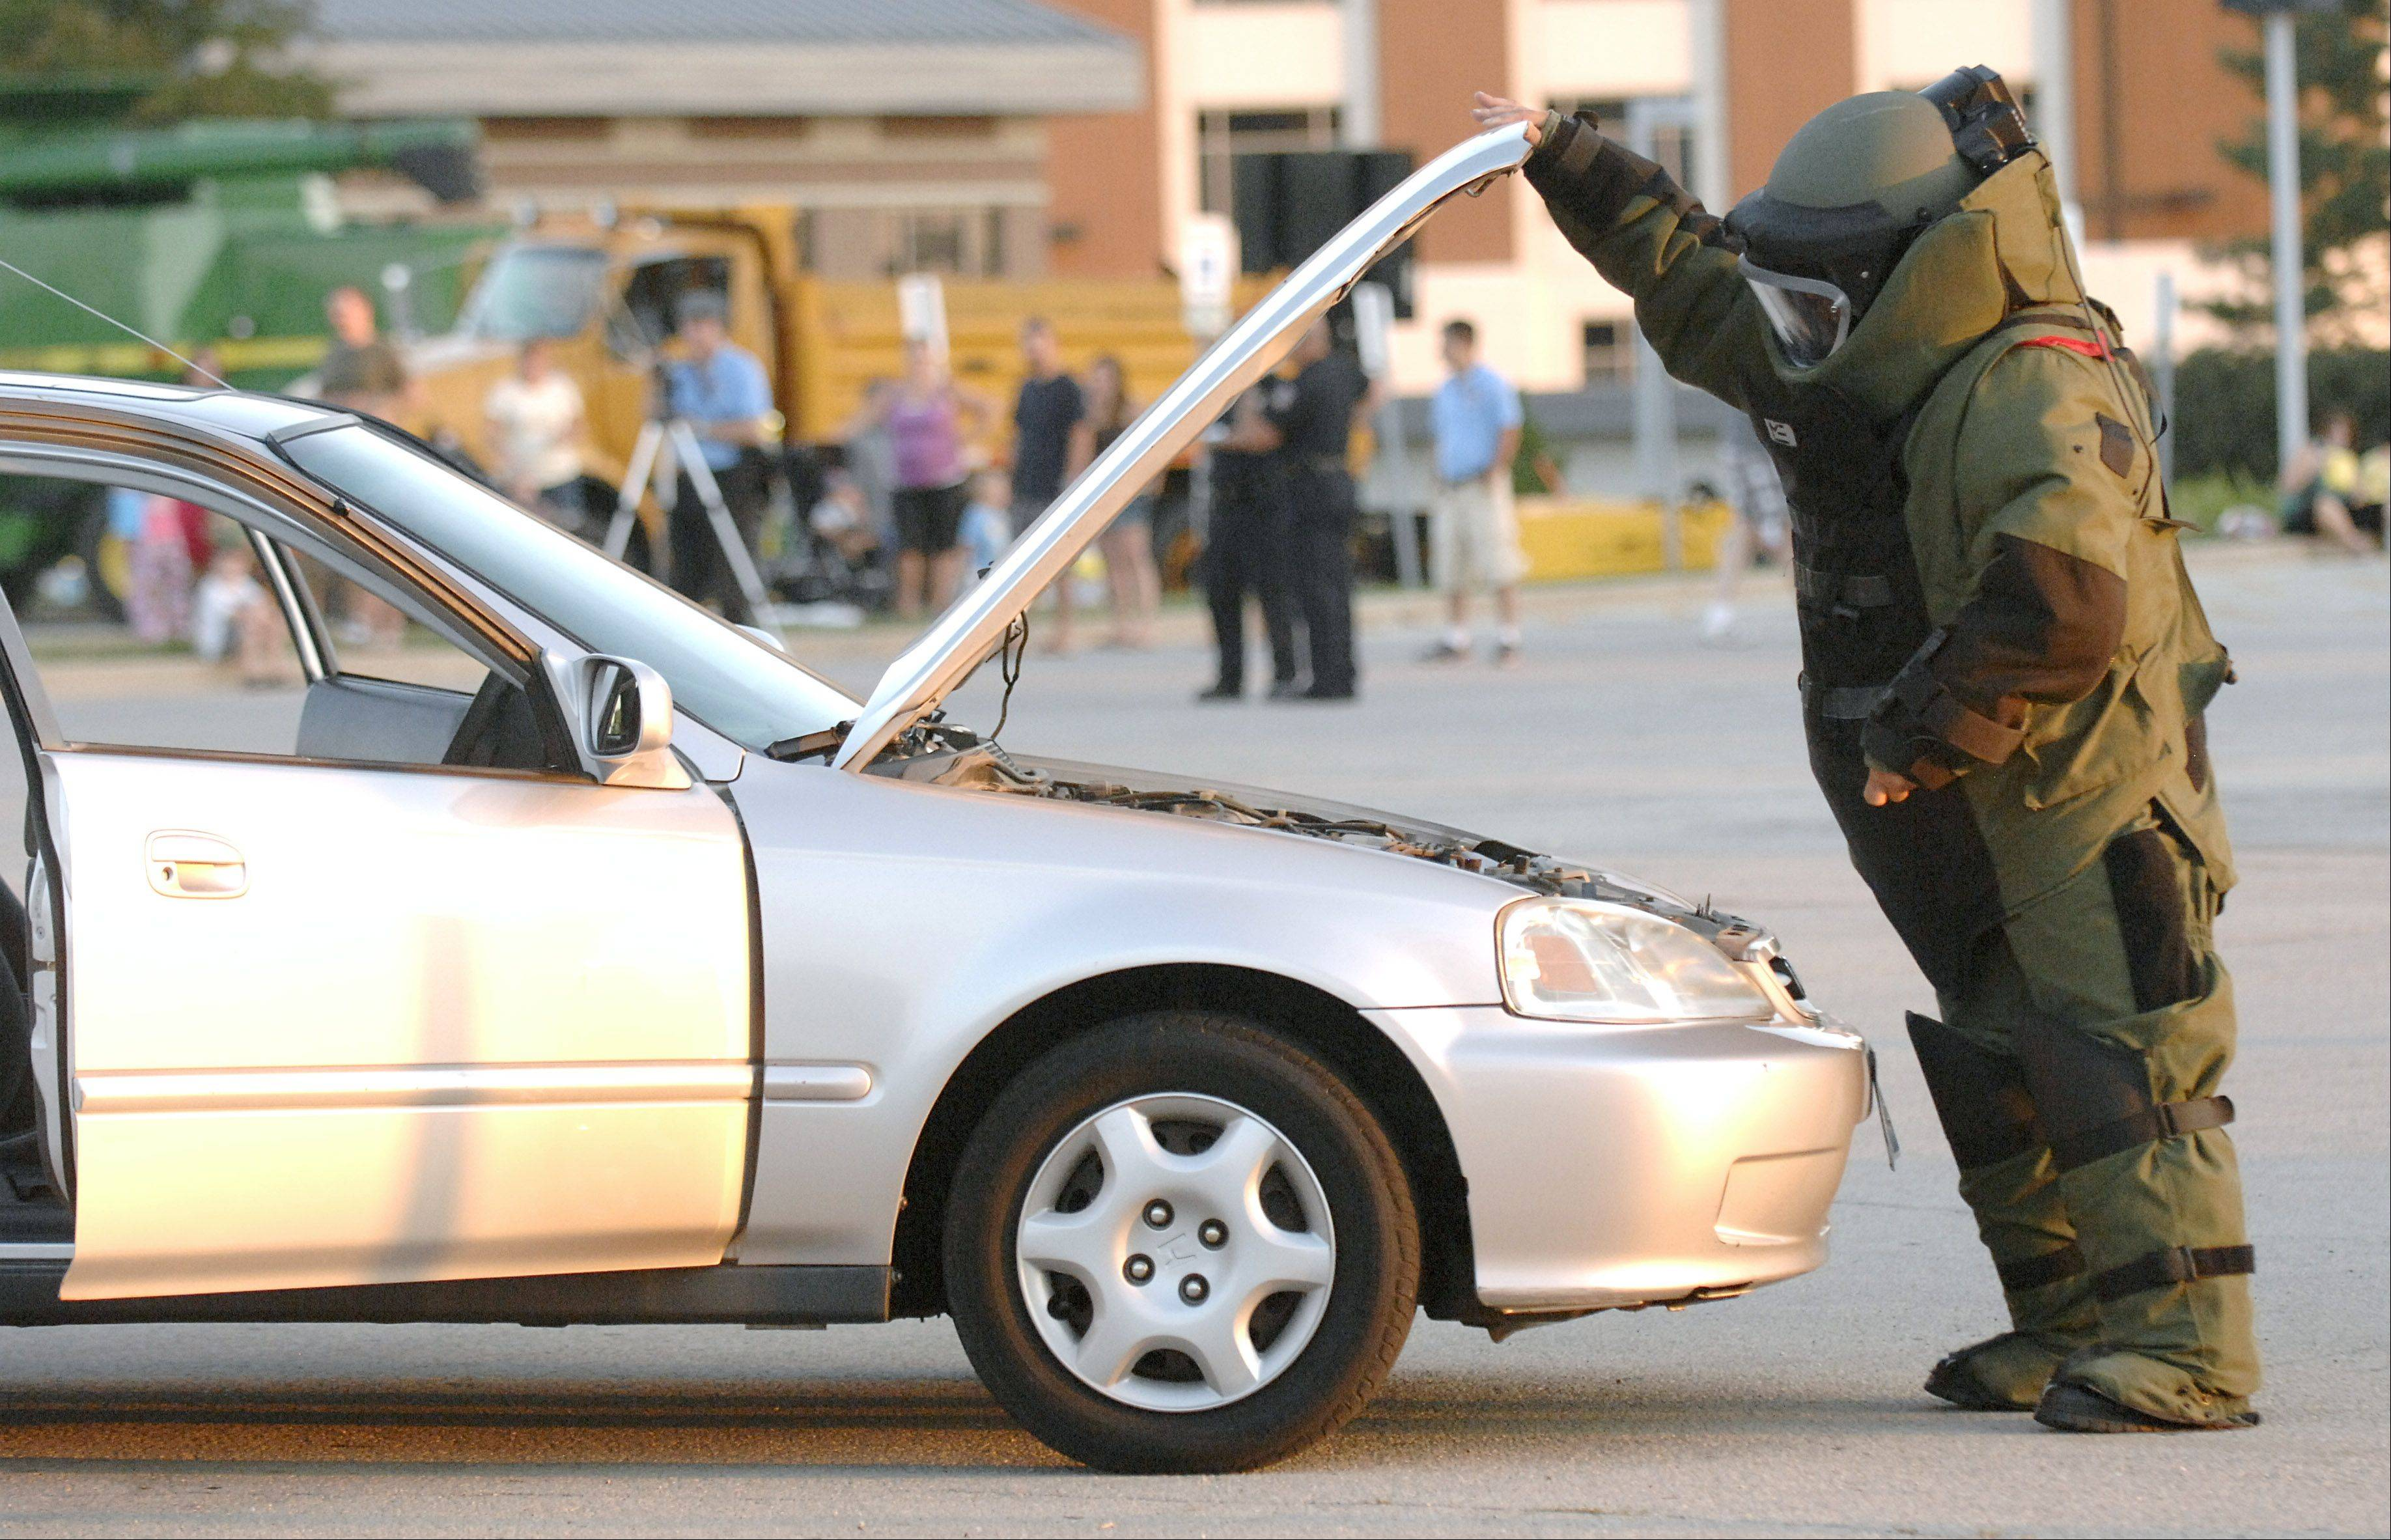 A member of the Kane County Sheriff Bomb Squad checks under the hood of a car during a bomb investigation demonstration at the Kane County Sheriff's National Night Out.